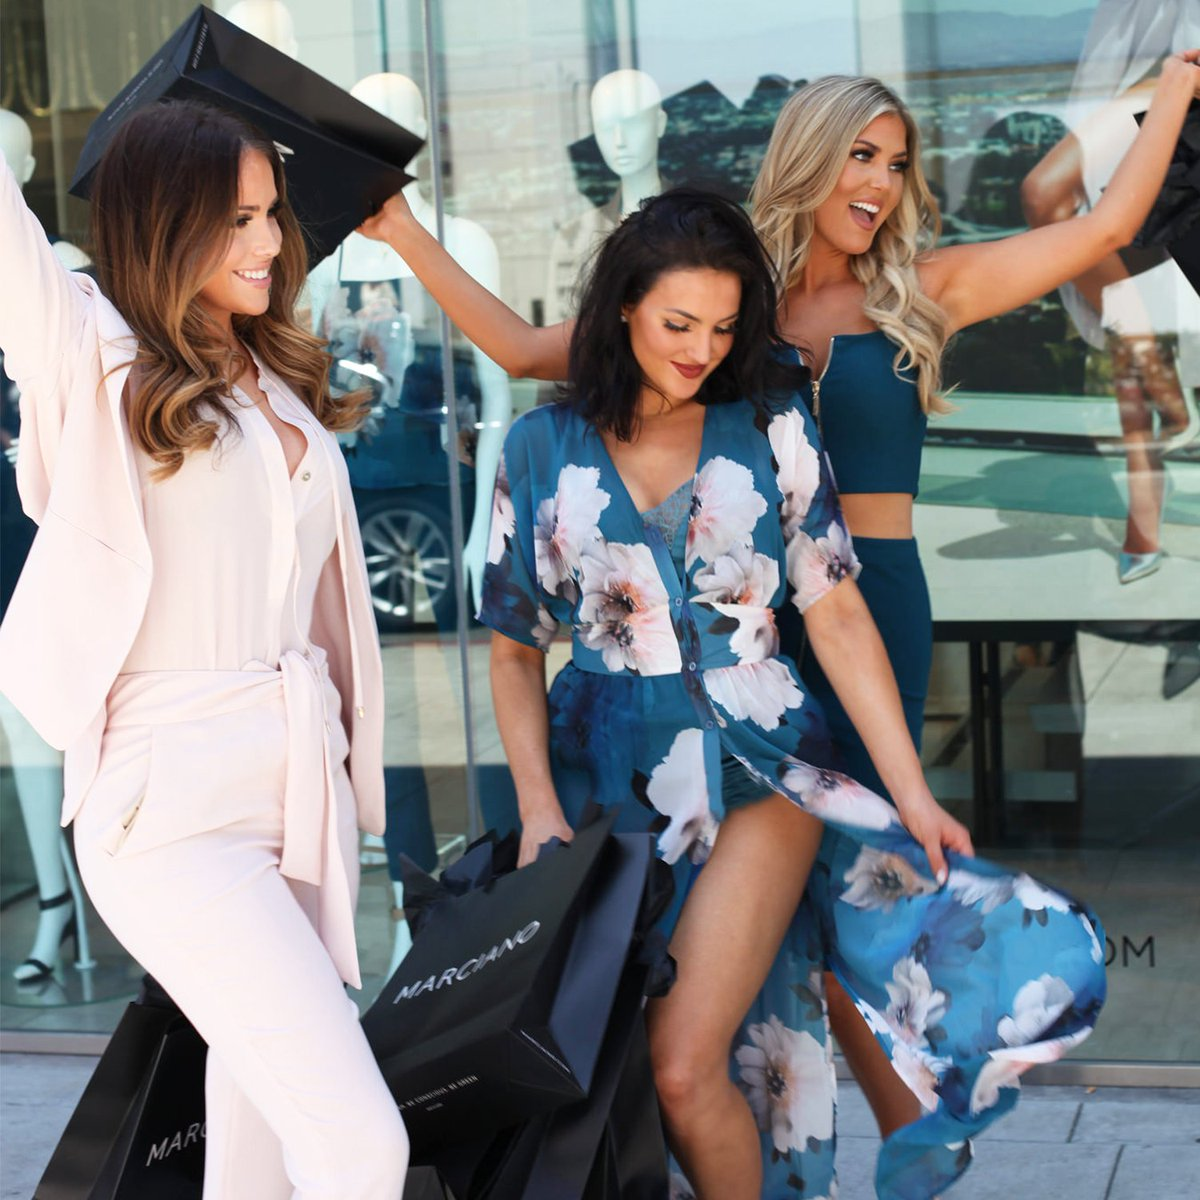 The weekend has arrived: @OliviaPierson @NatalieHalcro & @SophiaPierson celebrate in style ⭐️ #Marciano https://t.co/B1Qh0z1oDf